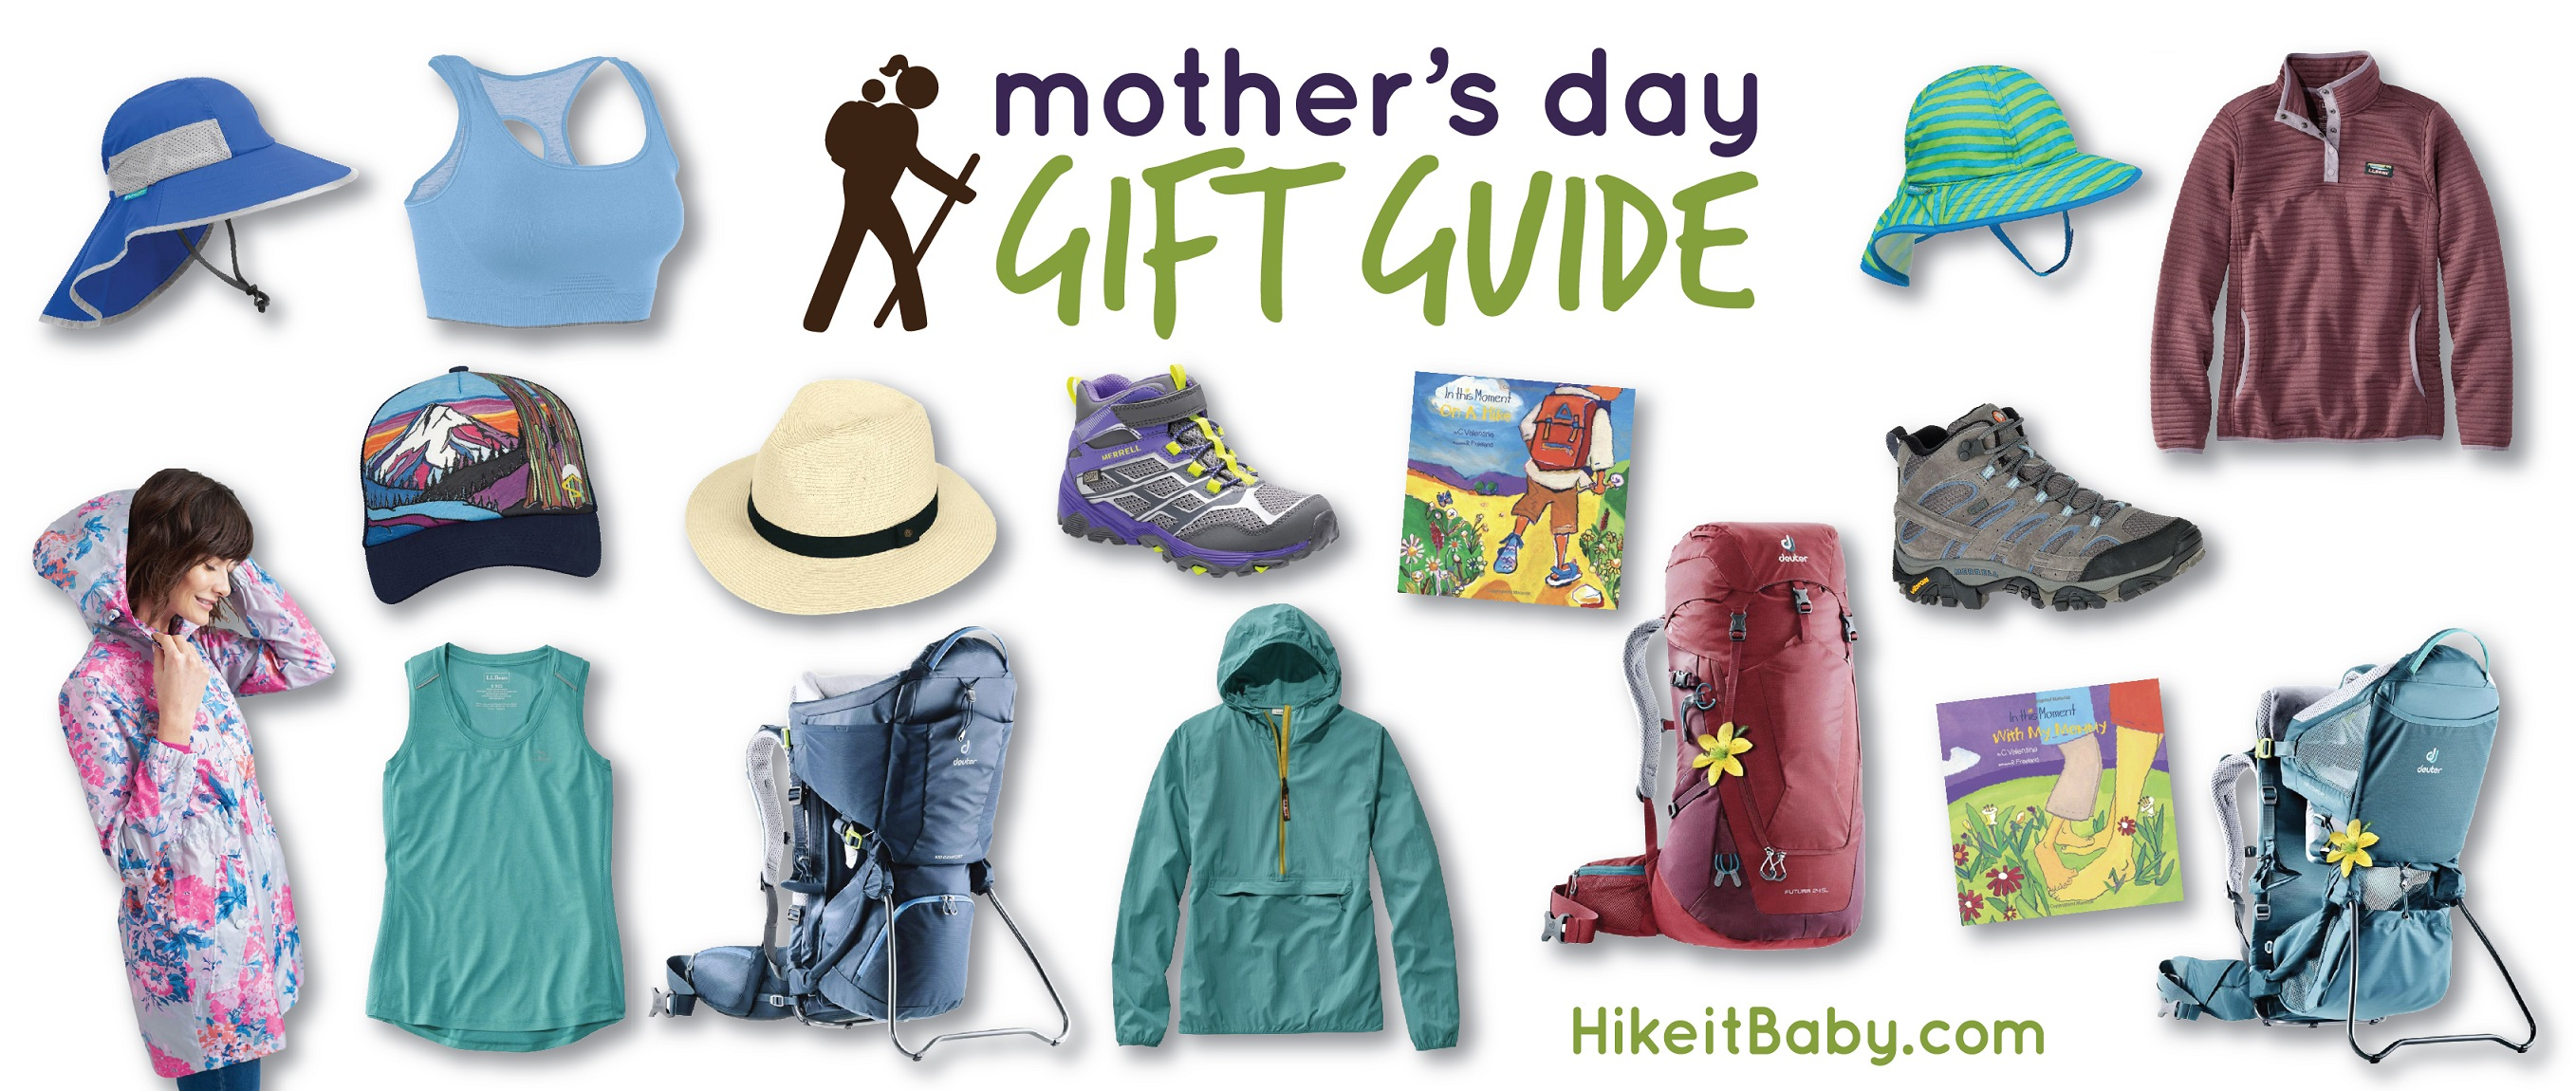 bfba73fd0 Mother's Day Gift Guide 2019 - Hike it Baby